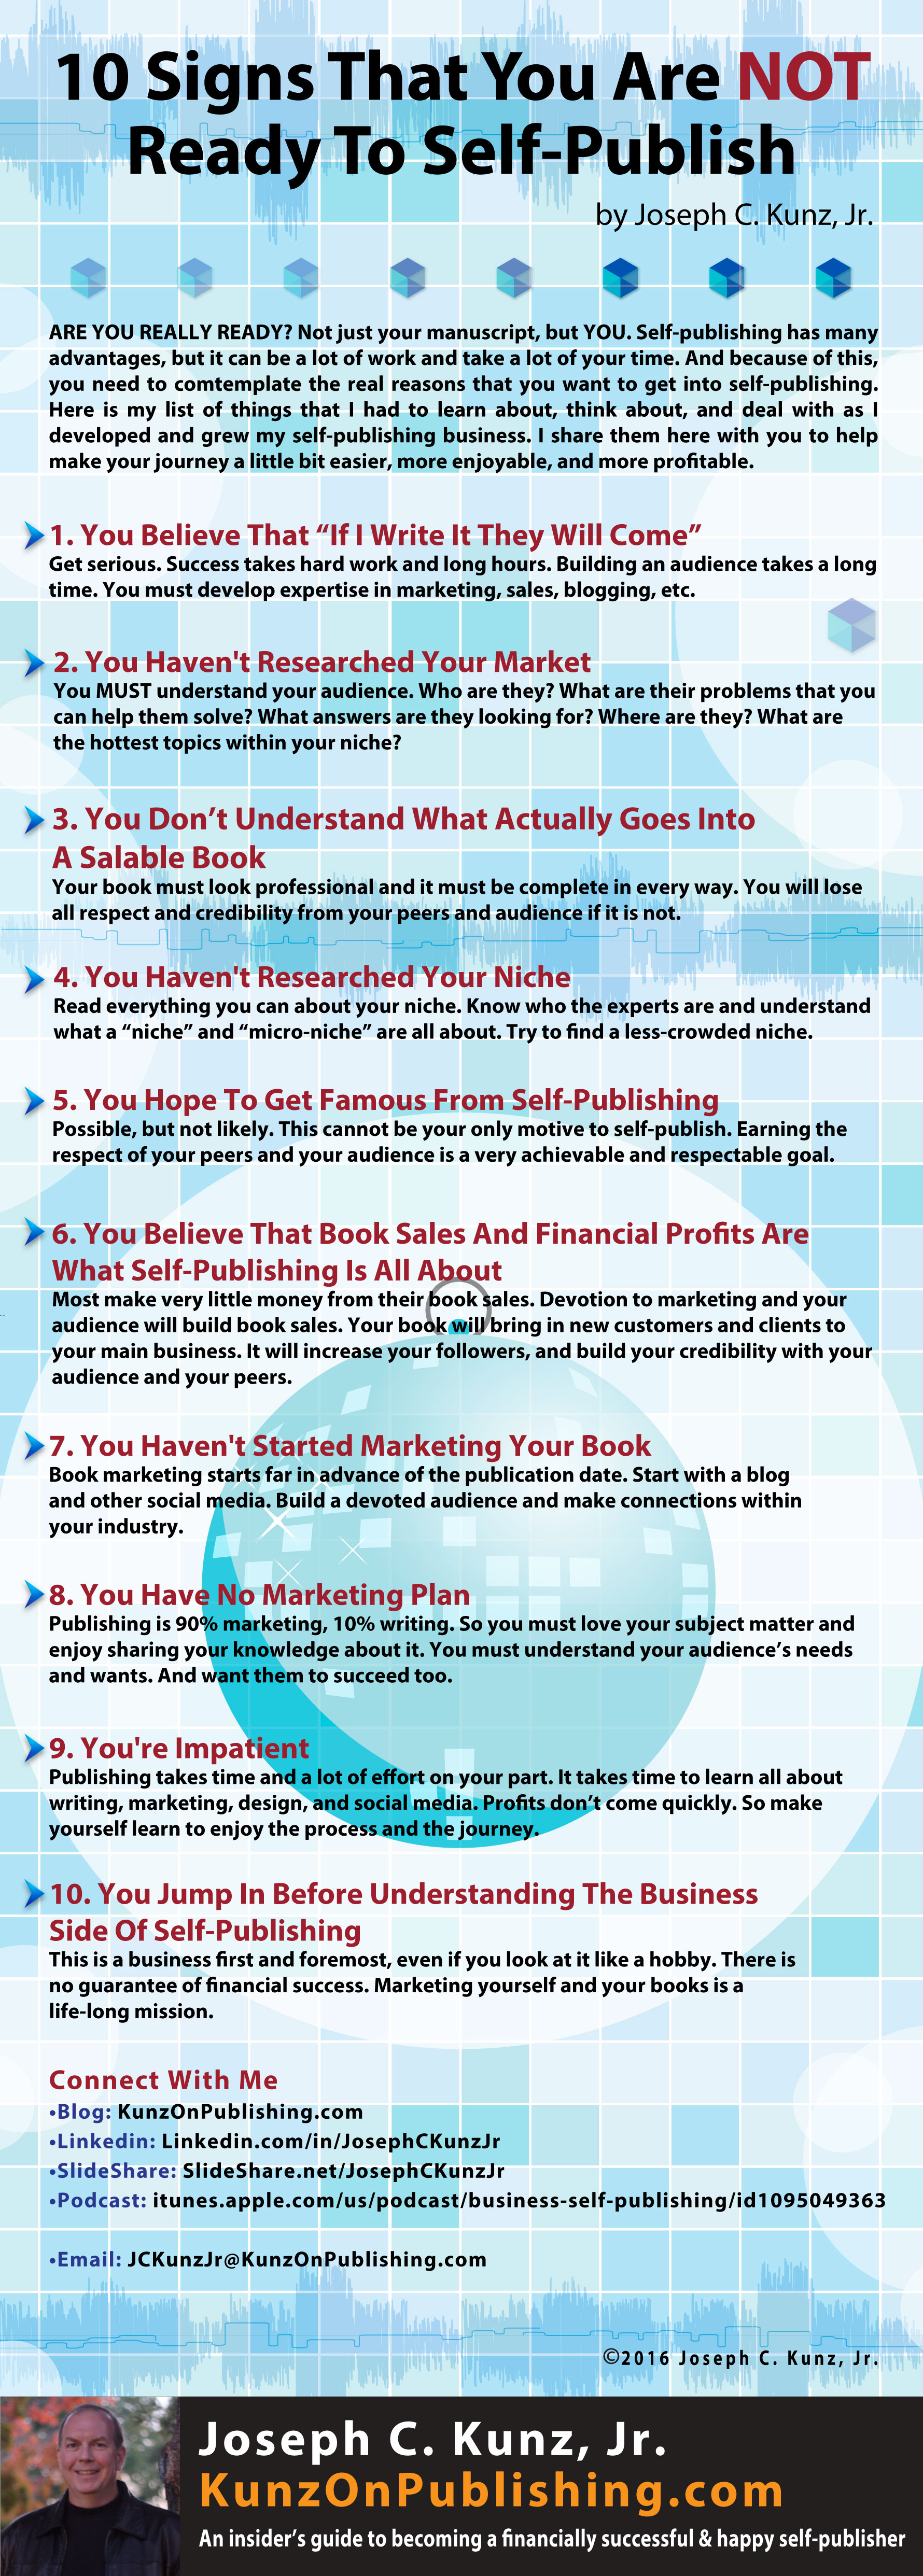 10 Signs That You Are Not Ready To Self-Publish